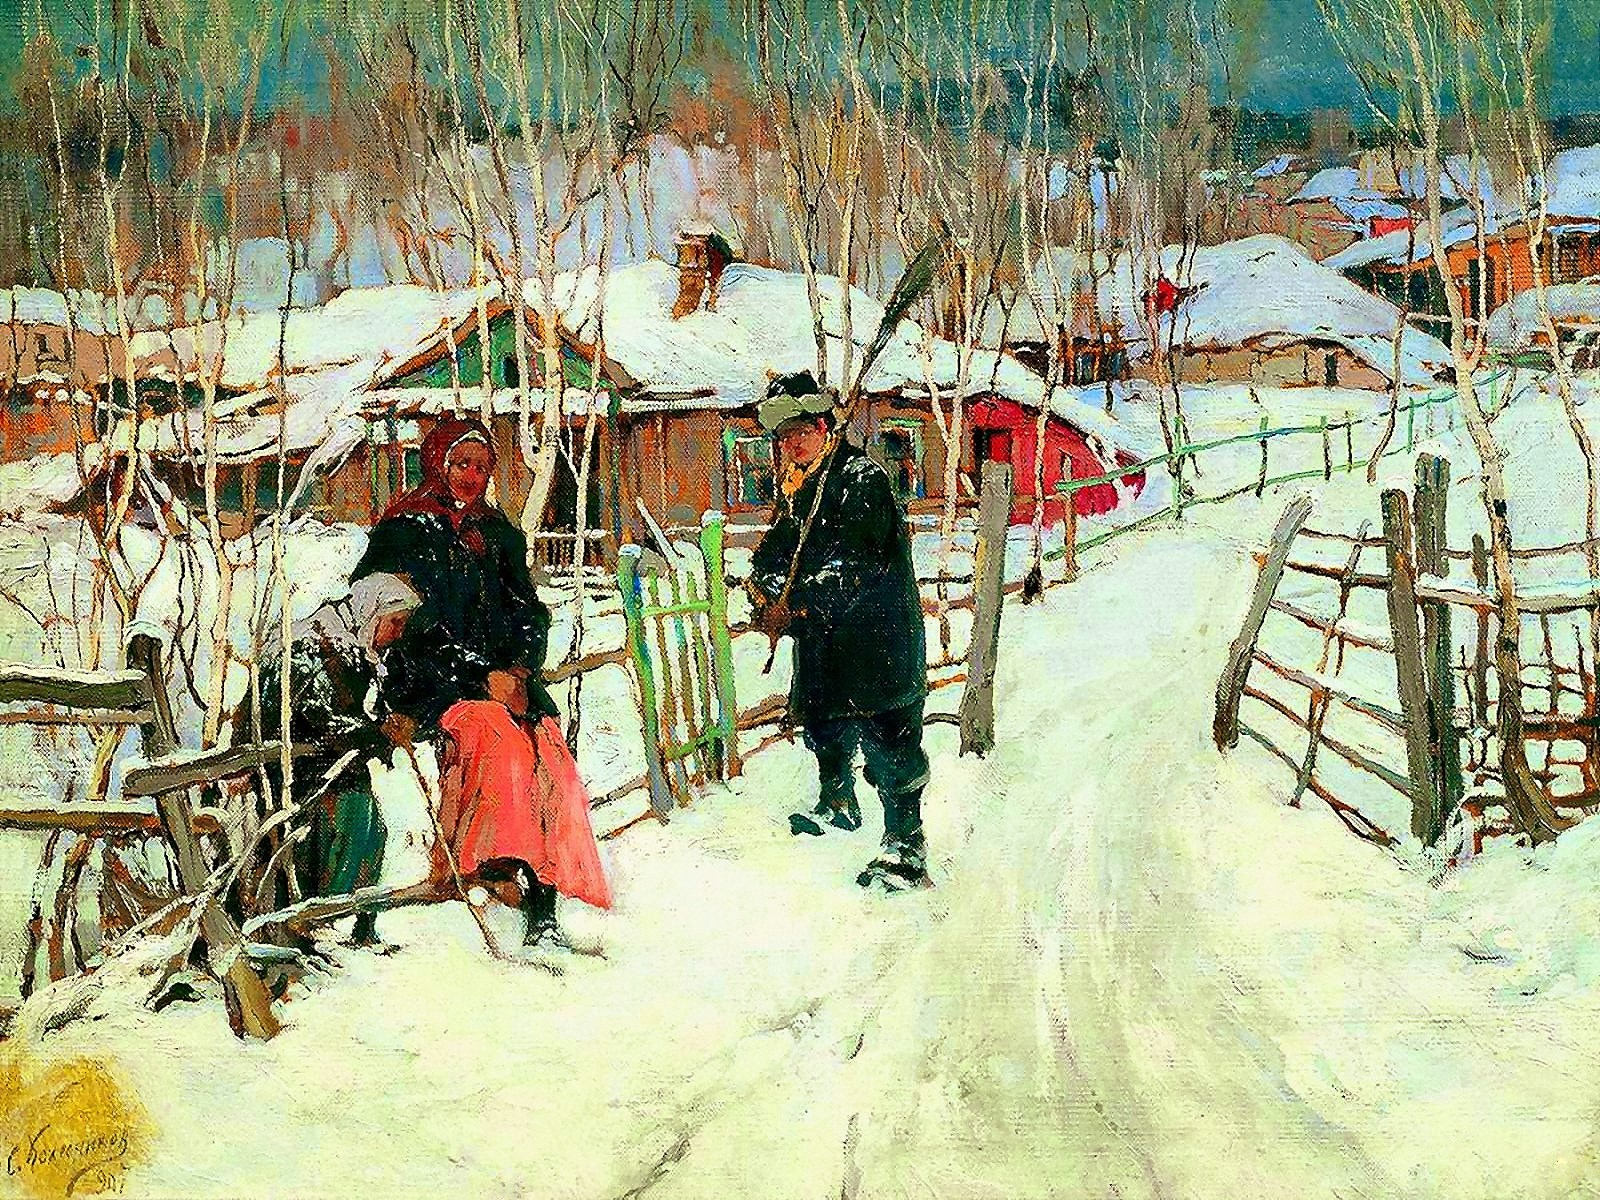 00 Stepan Kolesnikov. Winter. At the Village Boundary. 1907